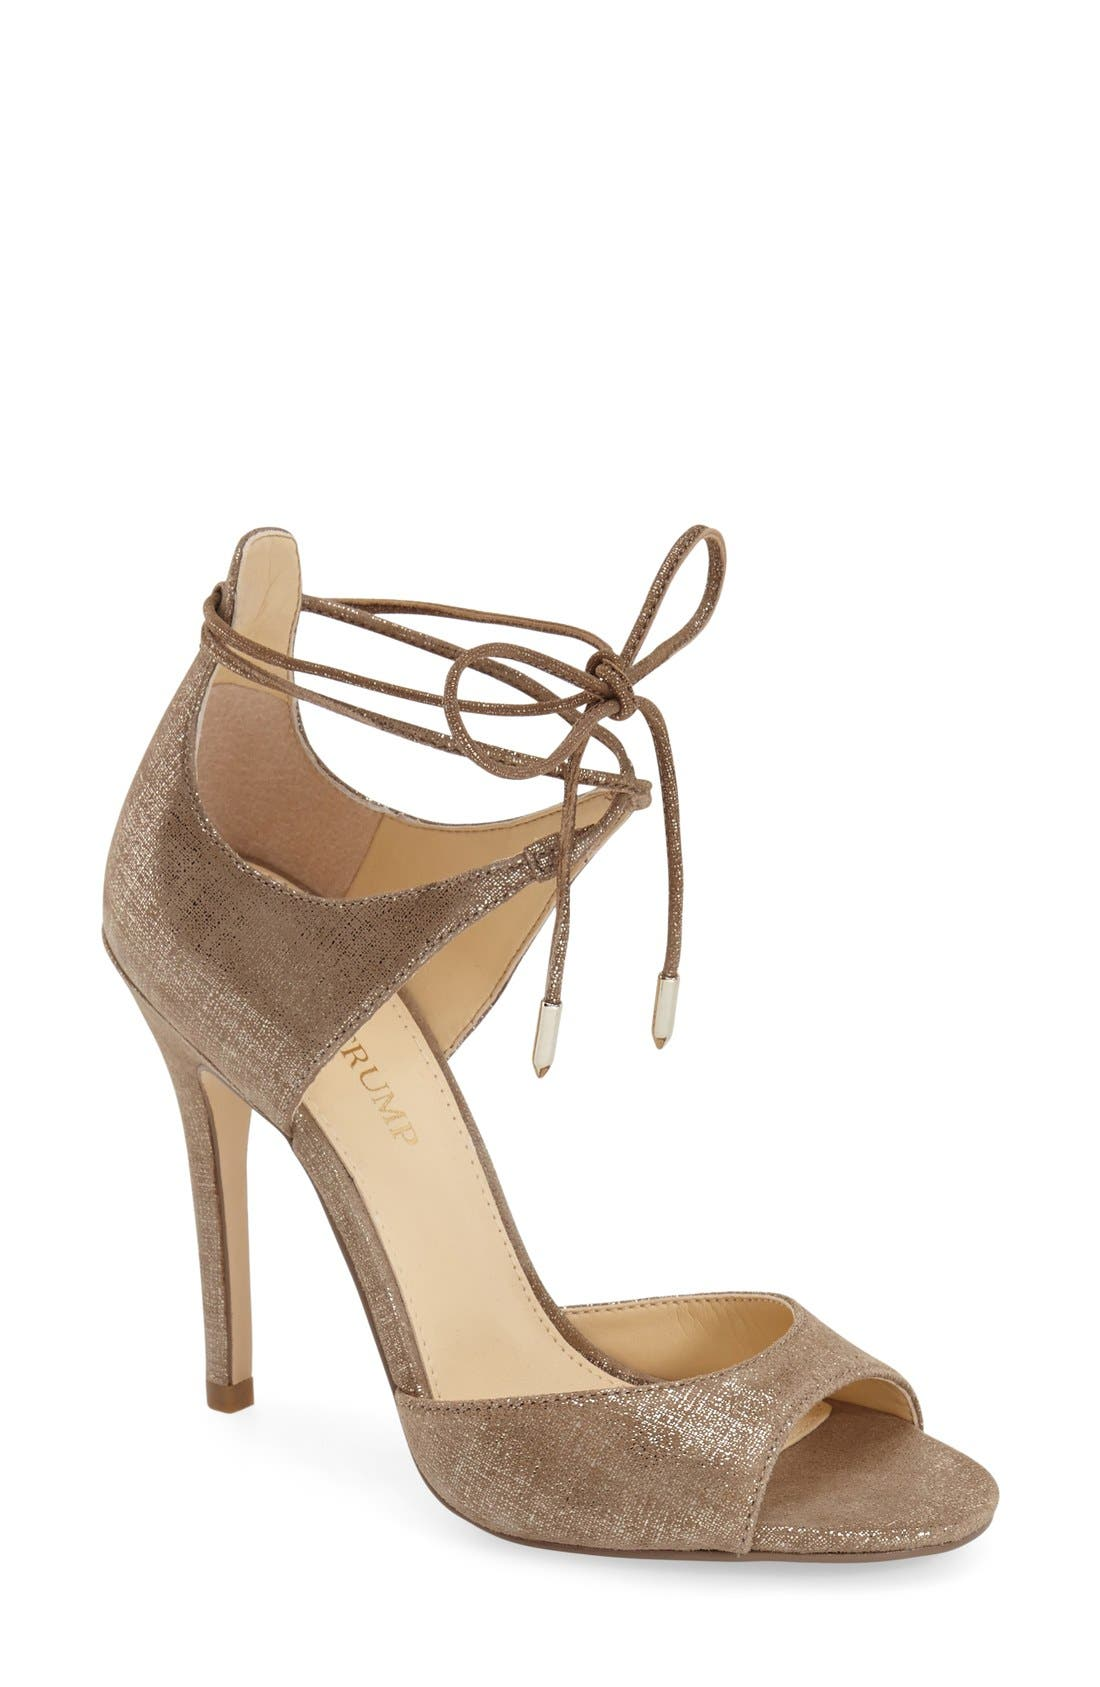 Alternate Image 1 Selected - Ivanka Trump 'Holidae' d'Orsay Sandal (Women)